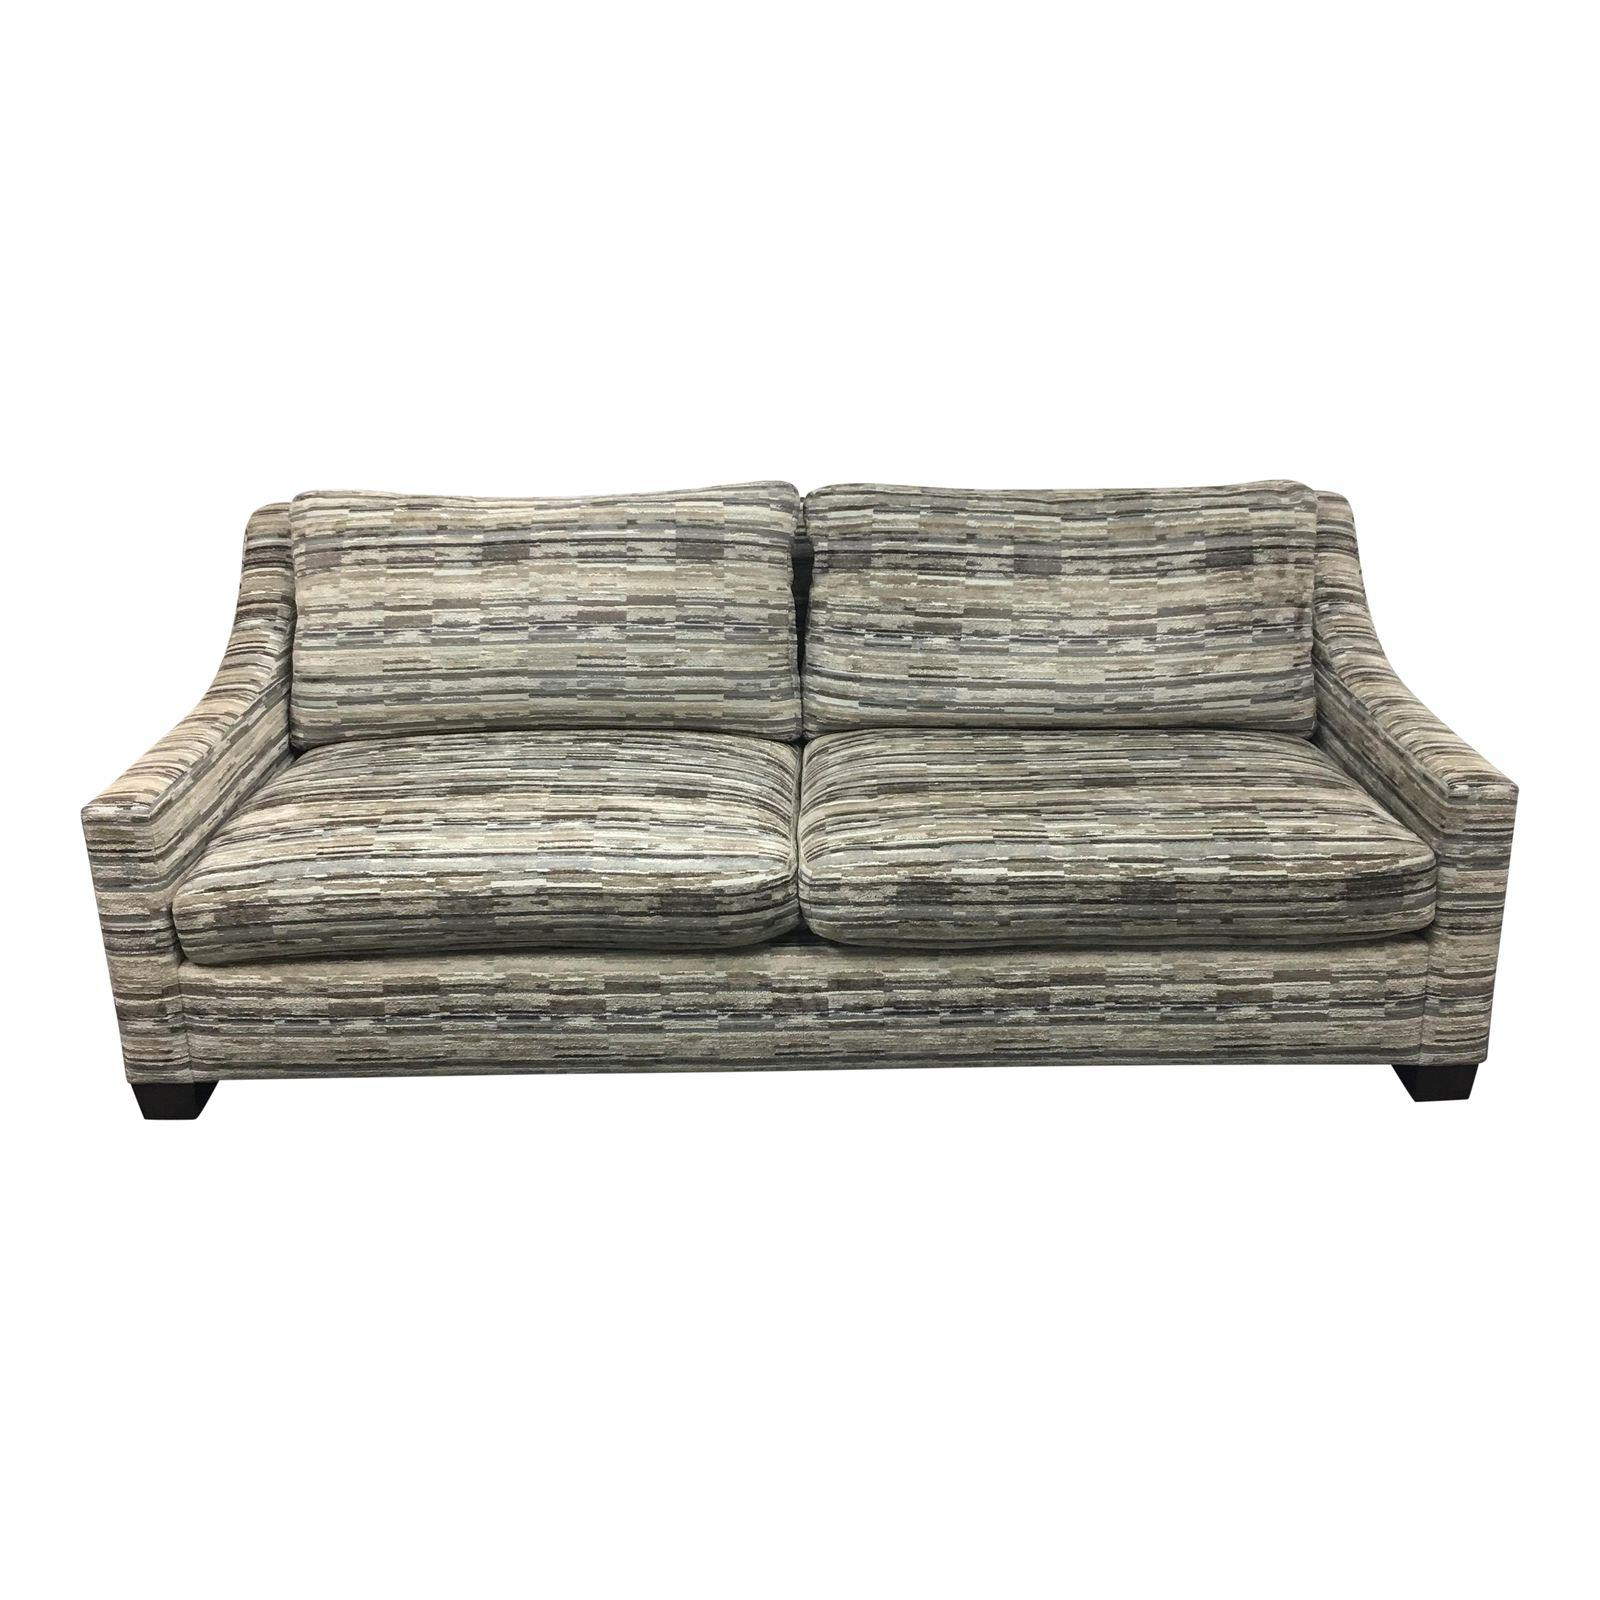 Custom A Rudin Sofa Upholstered In Donghia Fabric Original Price 8 000 00